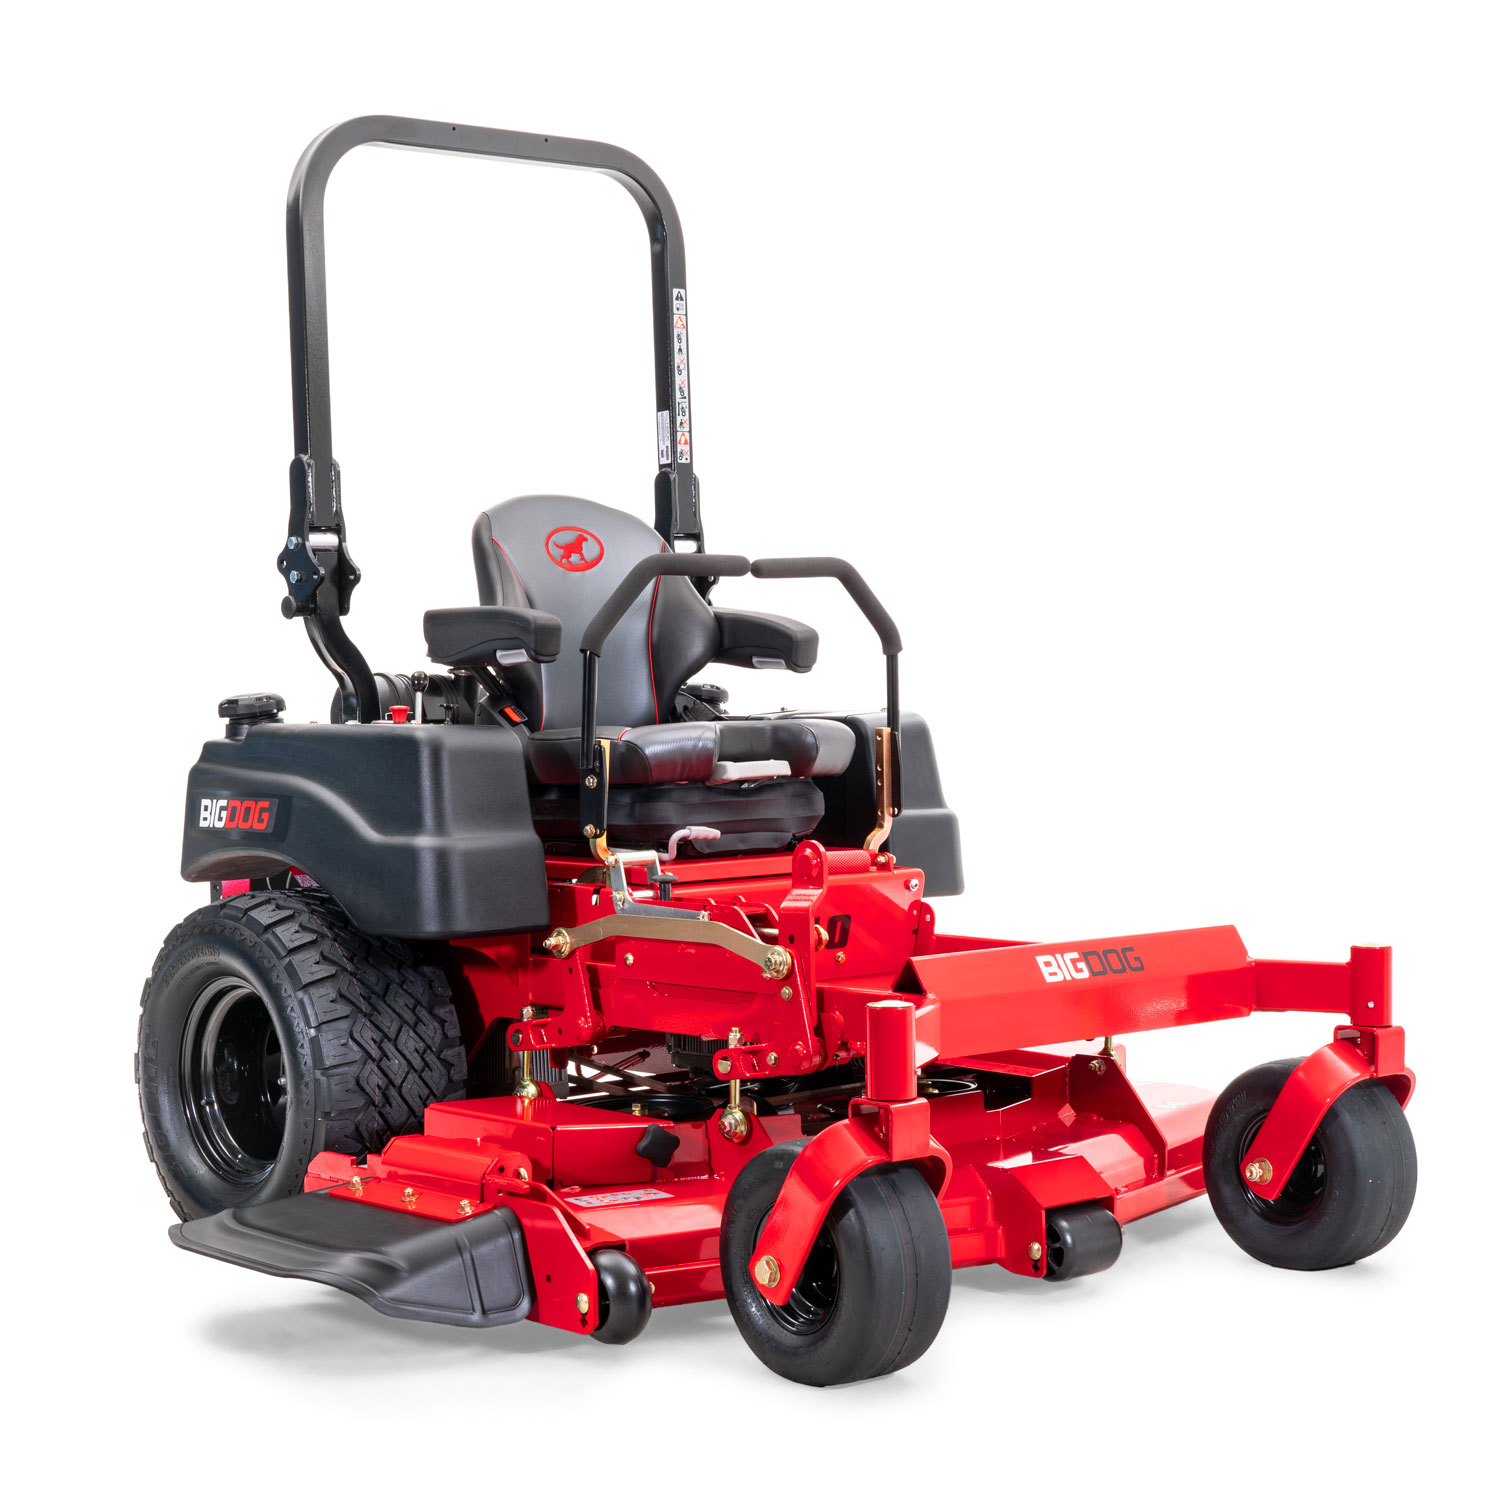 Image of the front three quarters of a red riding mower with the discharge chute shown